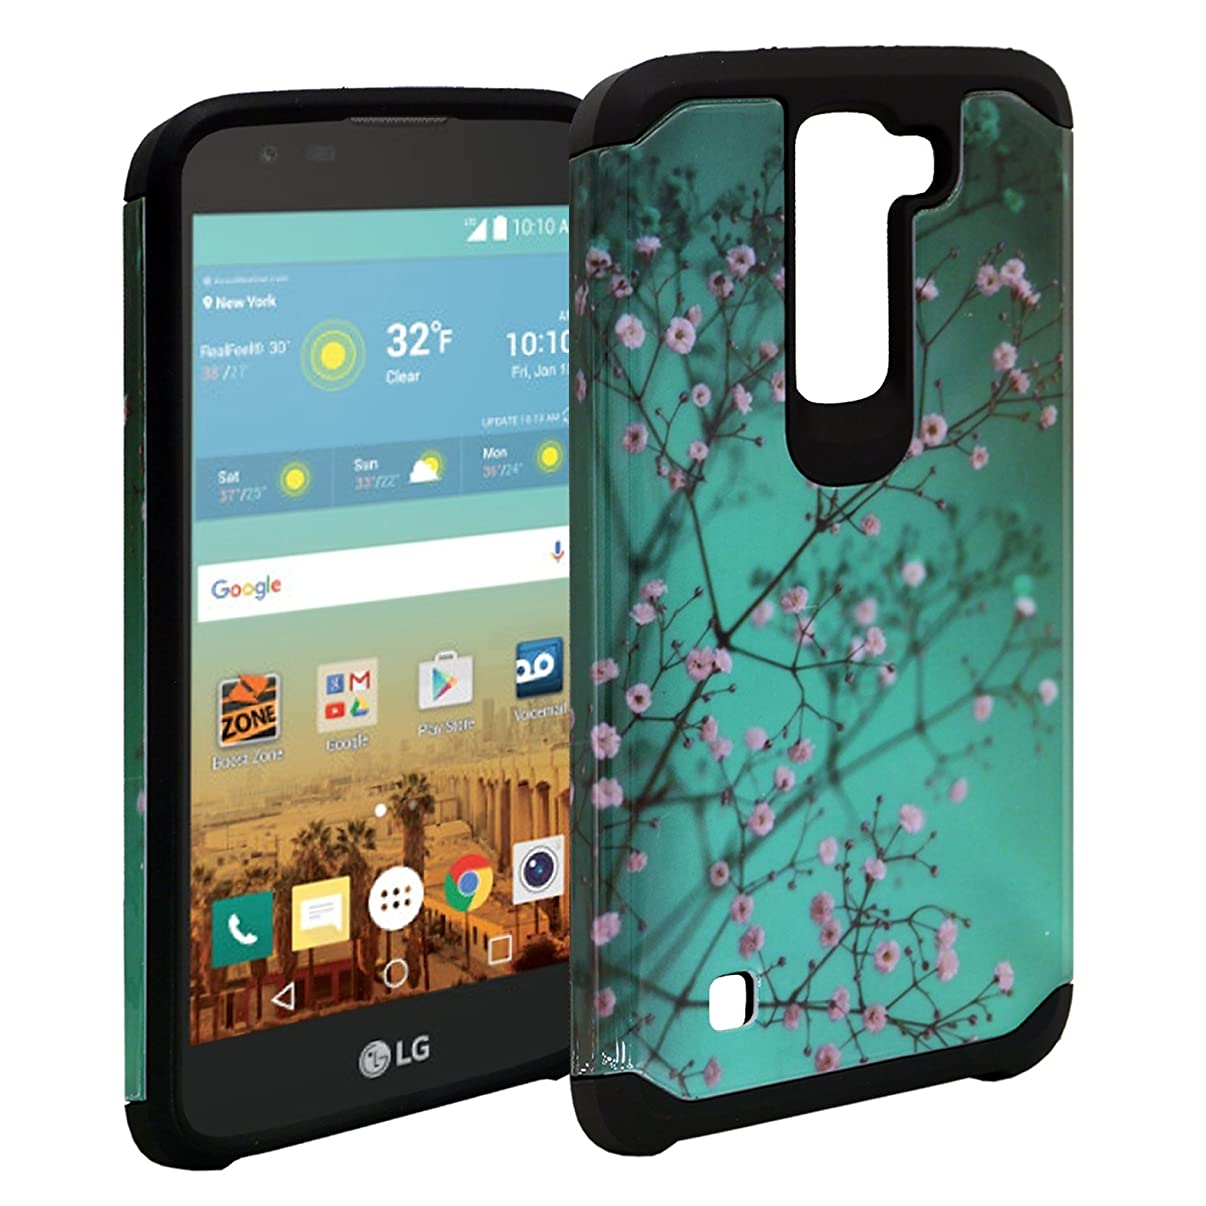 LG K7 Case,LG Tribute 5 Case, LG M1, Customerfirst [Shock Absorption / Impact Resistant] Hybrid Dual Layer Armor Defender Protective Case Cover for LG K7 (Blossom Teal)